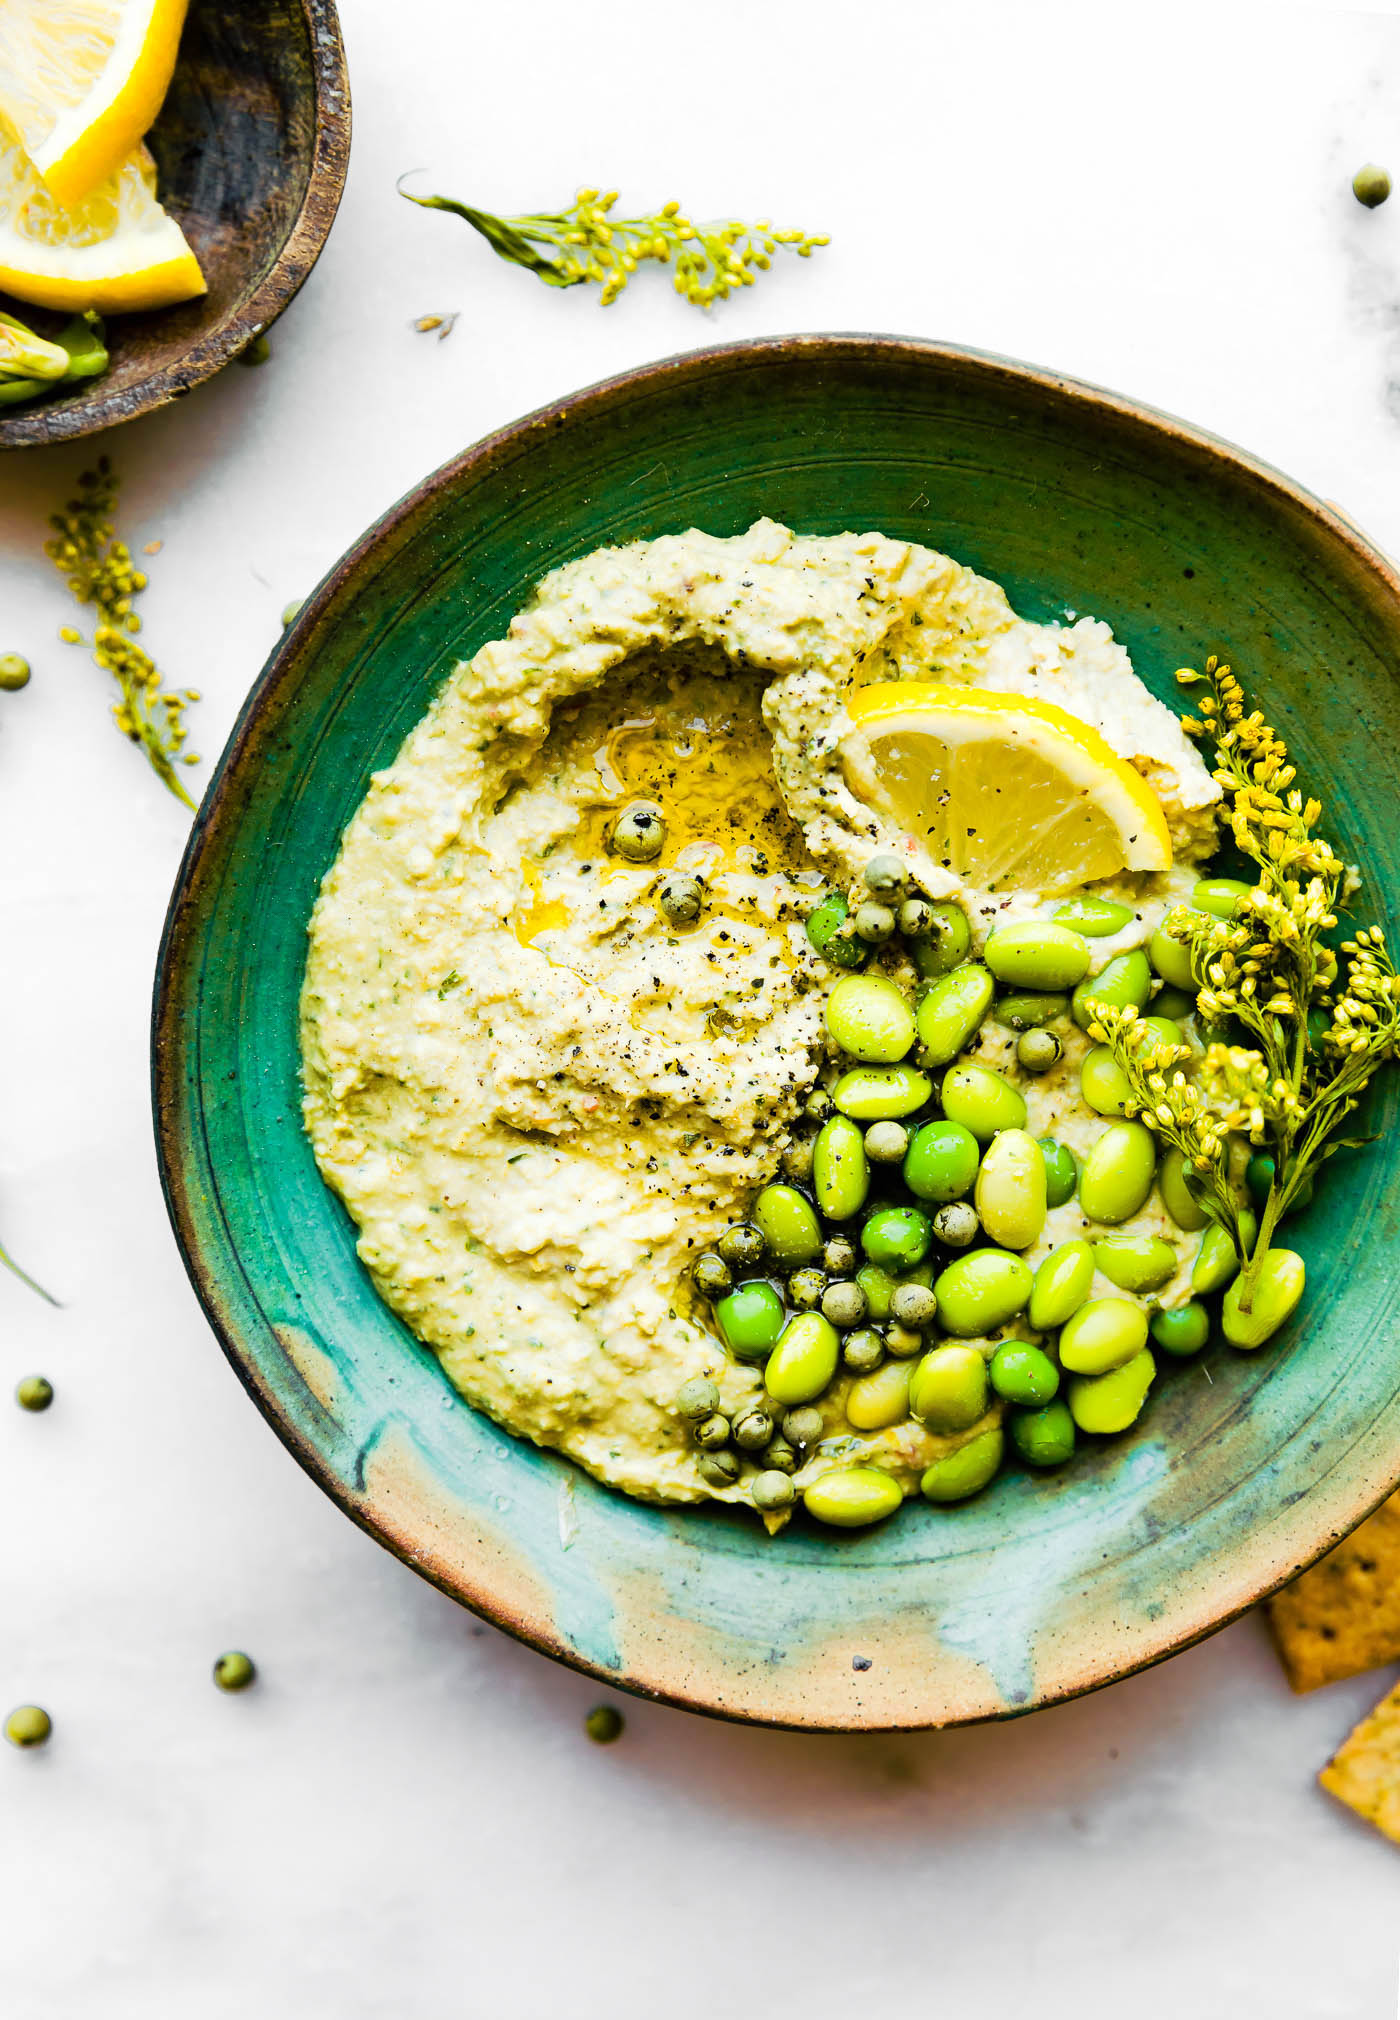 Quick Vegan Edamame Pesto dip! A vegan pesto dip recipe that creamy, healthy, and flavorful.  Nut free, rich in plant protein, and made with less than 6 ingredients. Use this edamame pesto dip on a sandwiches, in pasta, or make into wholesome appetizer dip.